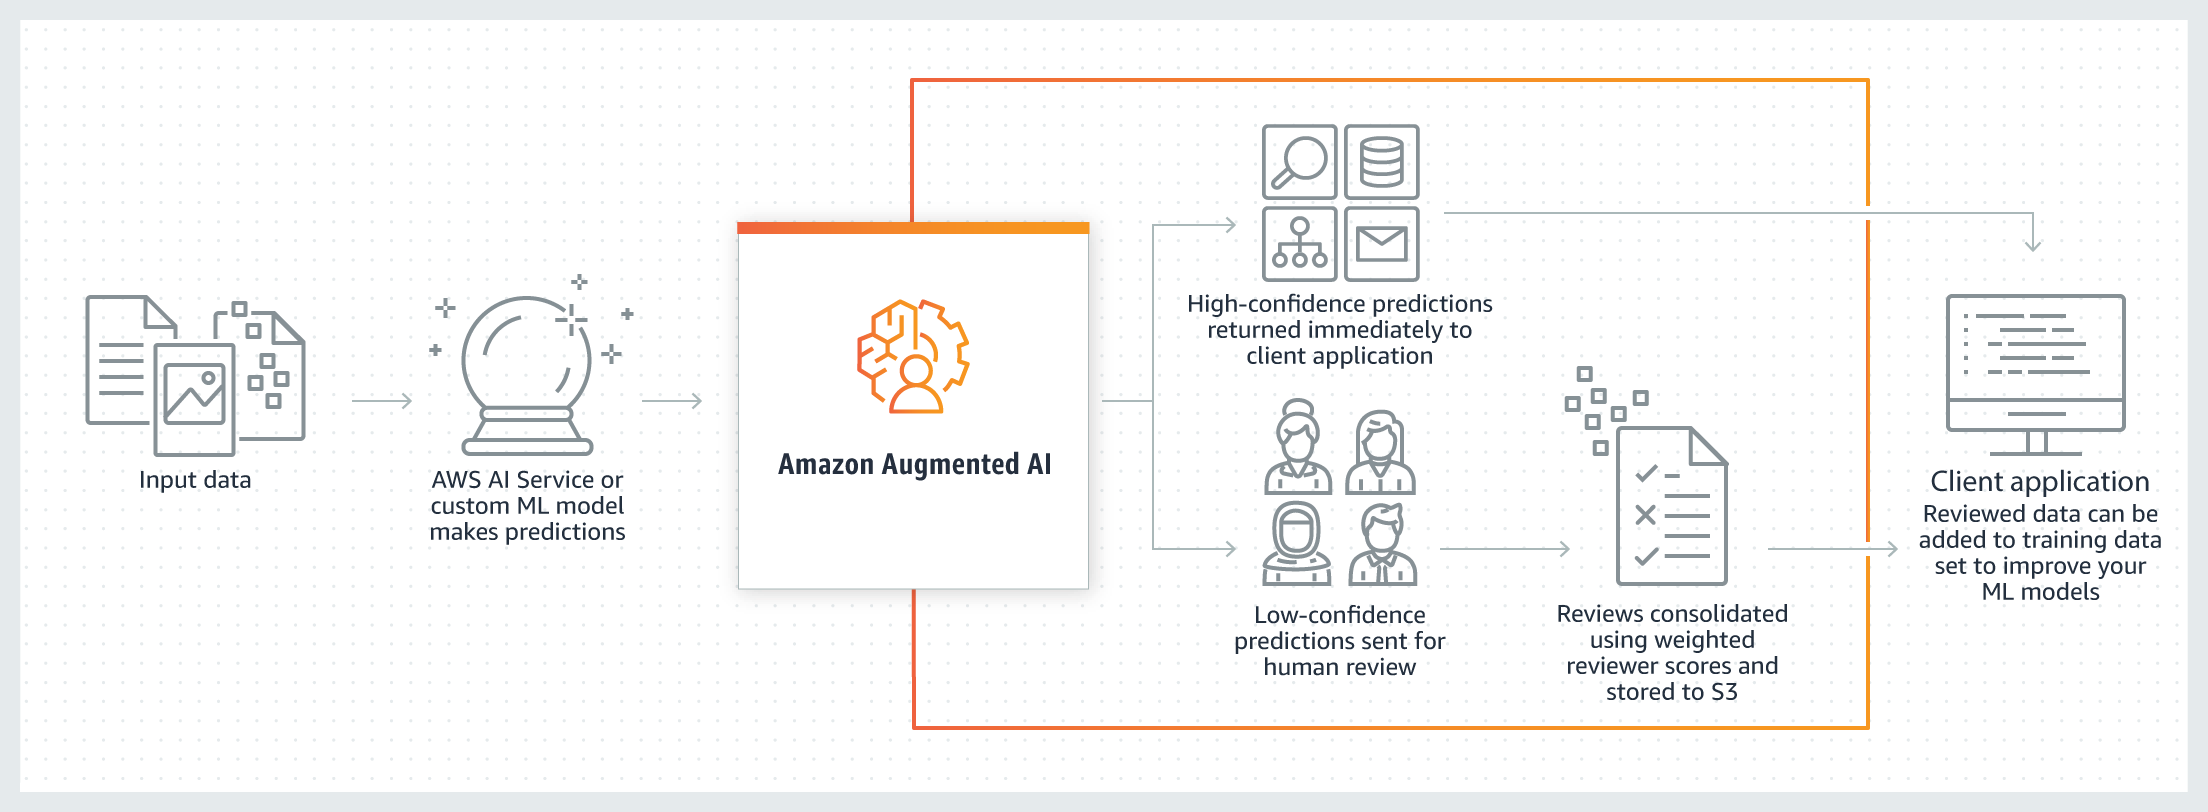 Using Amazon Augmented AI for Human Review - Amazon SageMaker